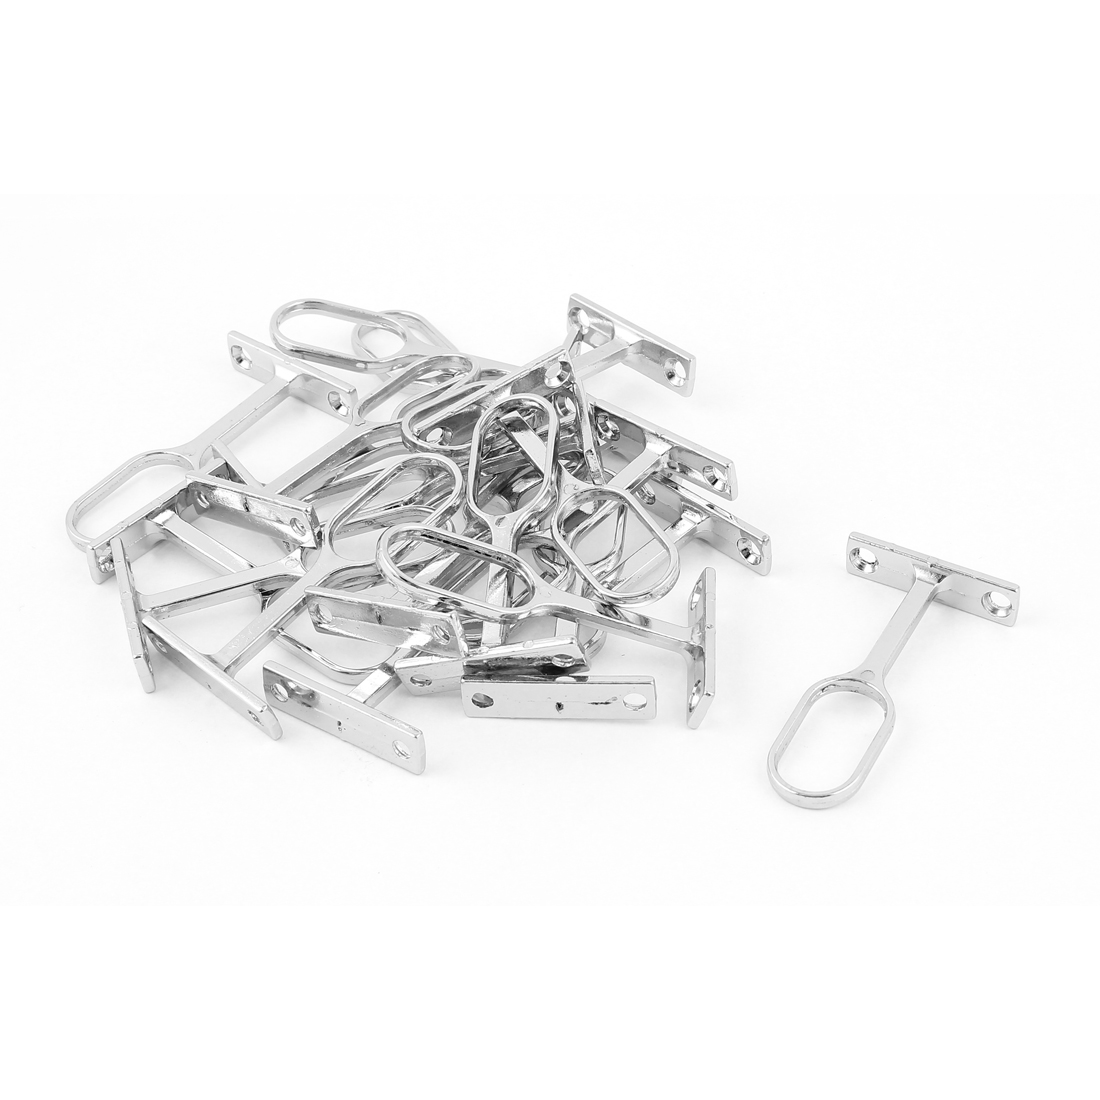 Metallic Wall Mounted Clothes Pipe Lever Bracket Support Silver Tone 20pcs